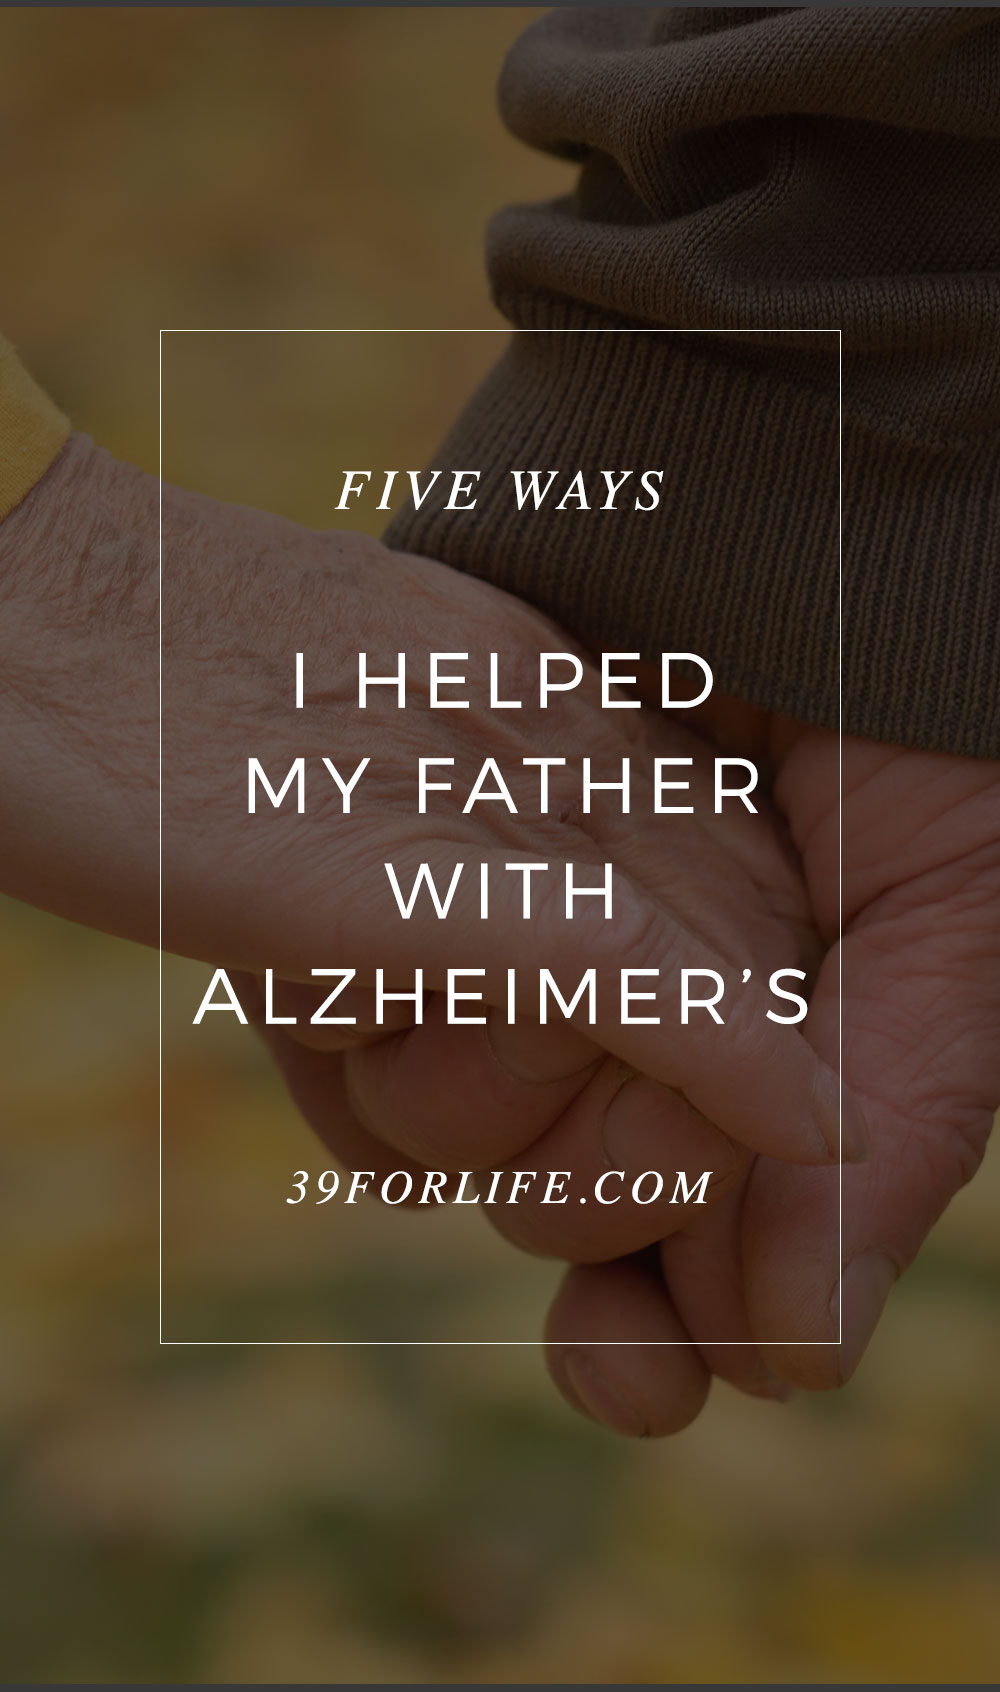 Watching my father slip away because of Alzheimer's was painful. Here is a list of five ways I supported him as he struggled with this disease.